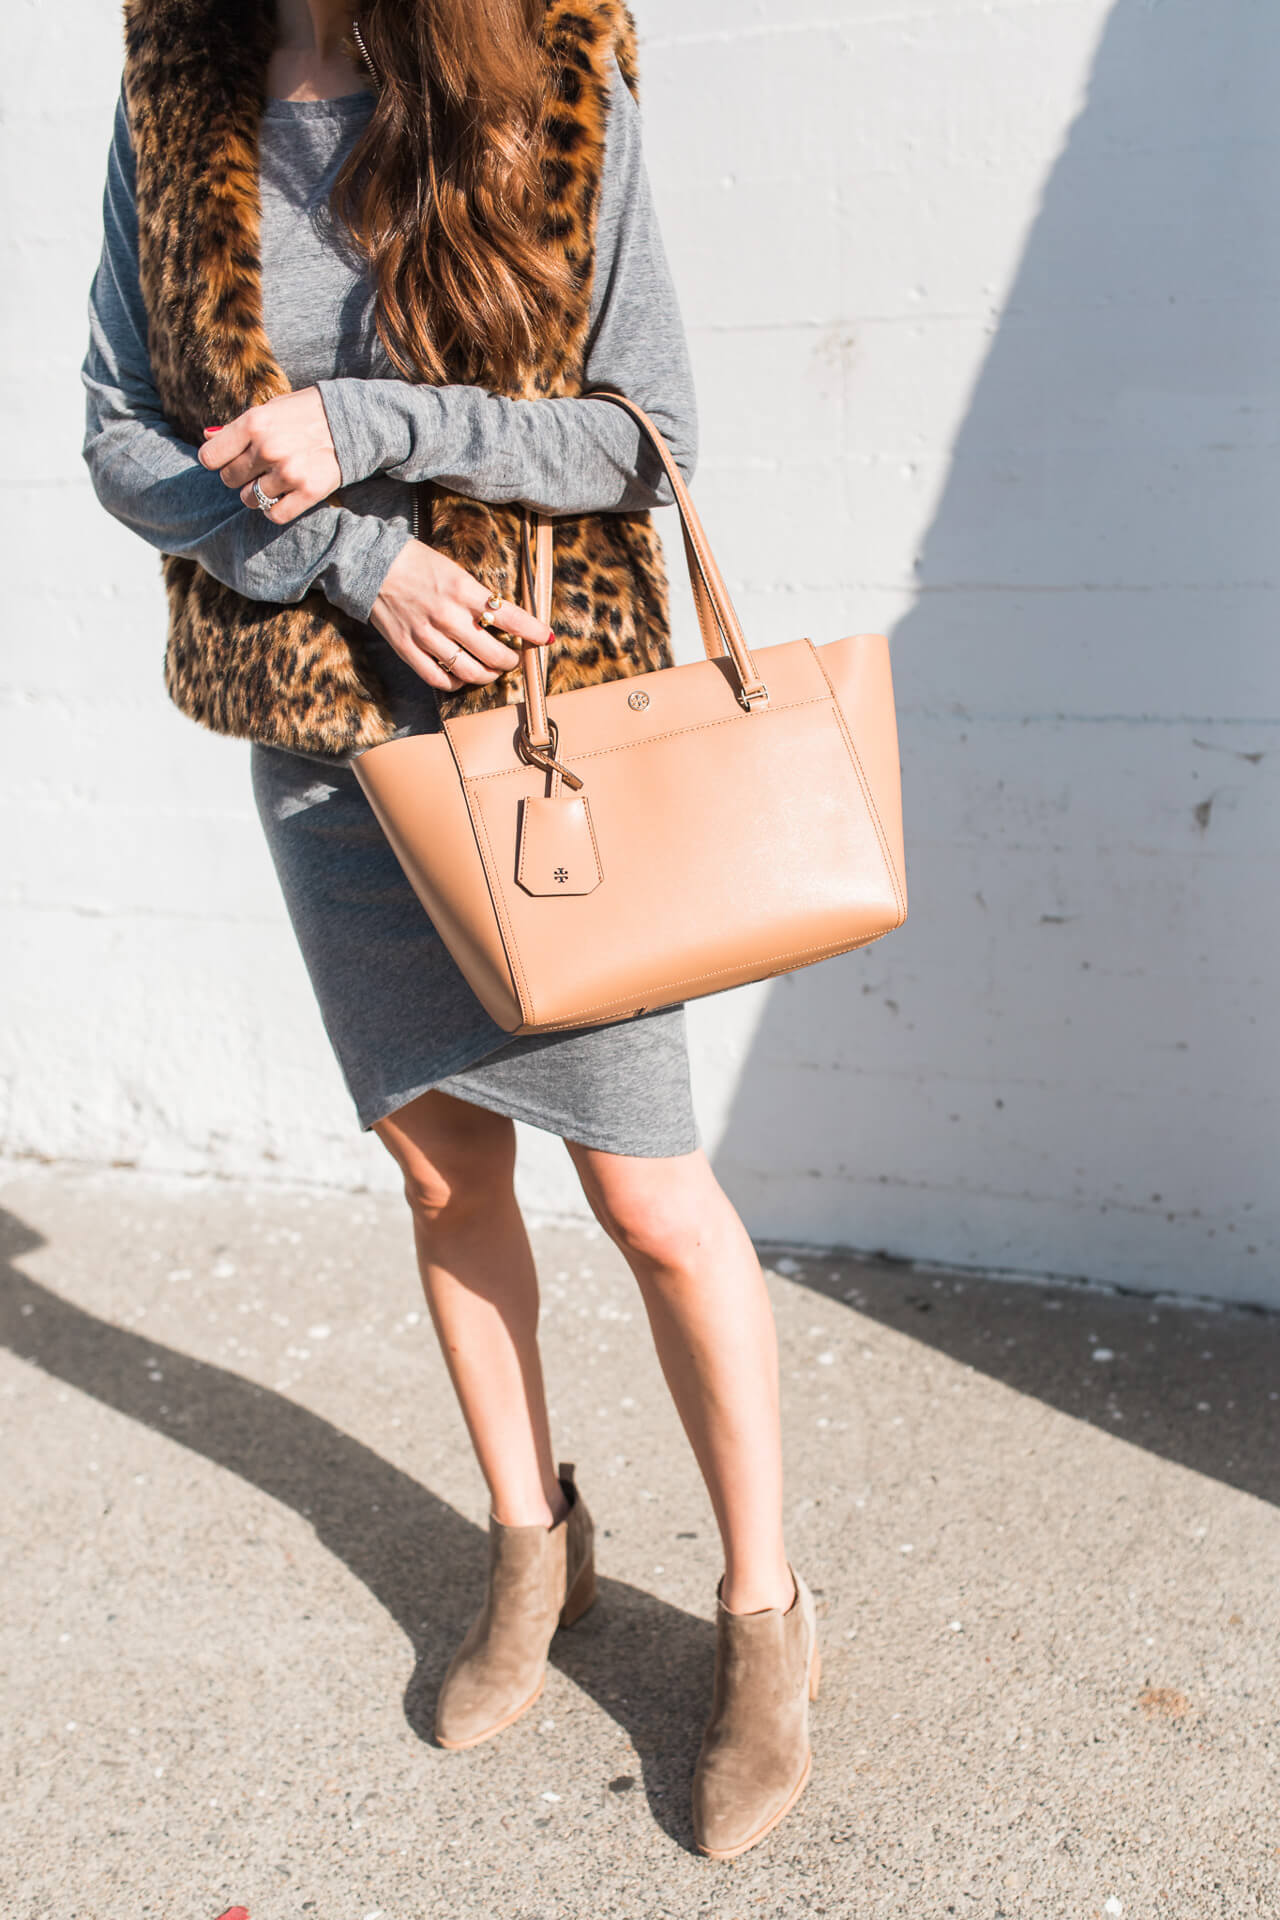 The perfect purse to bring out for fall